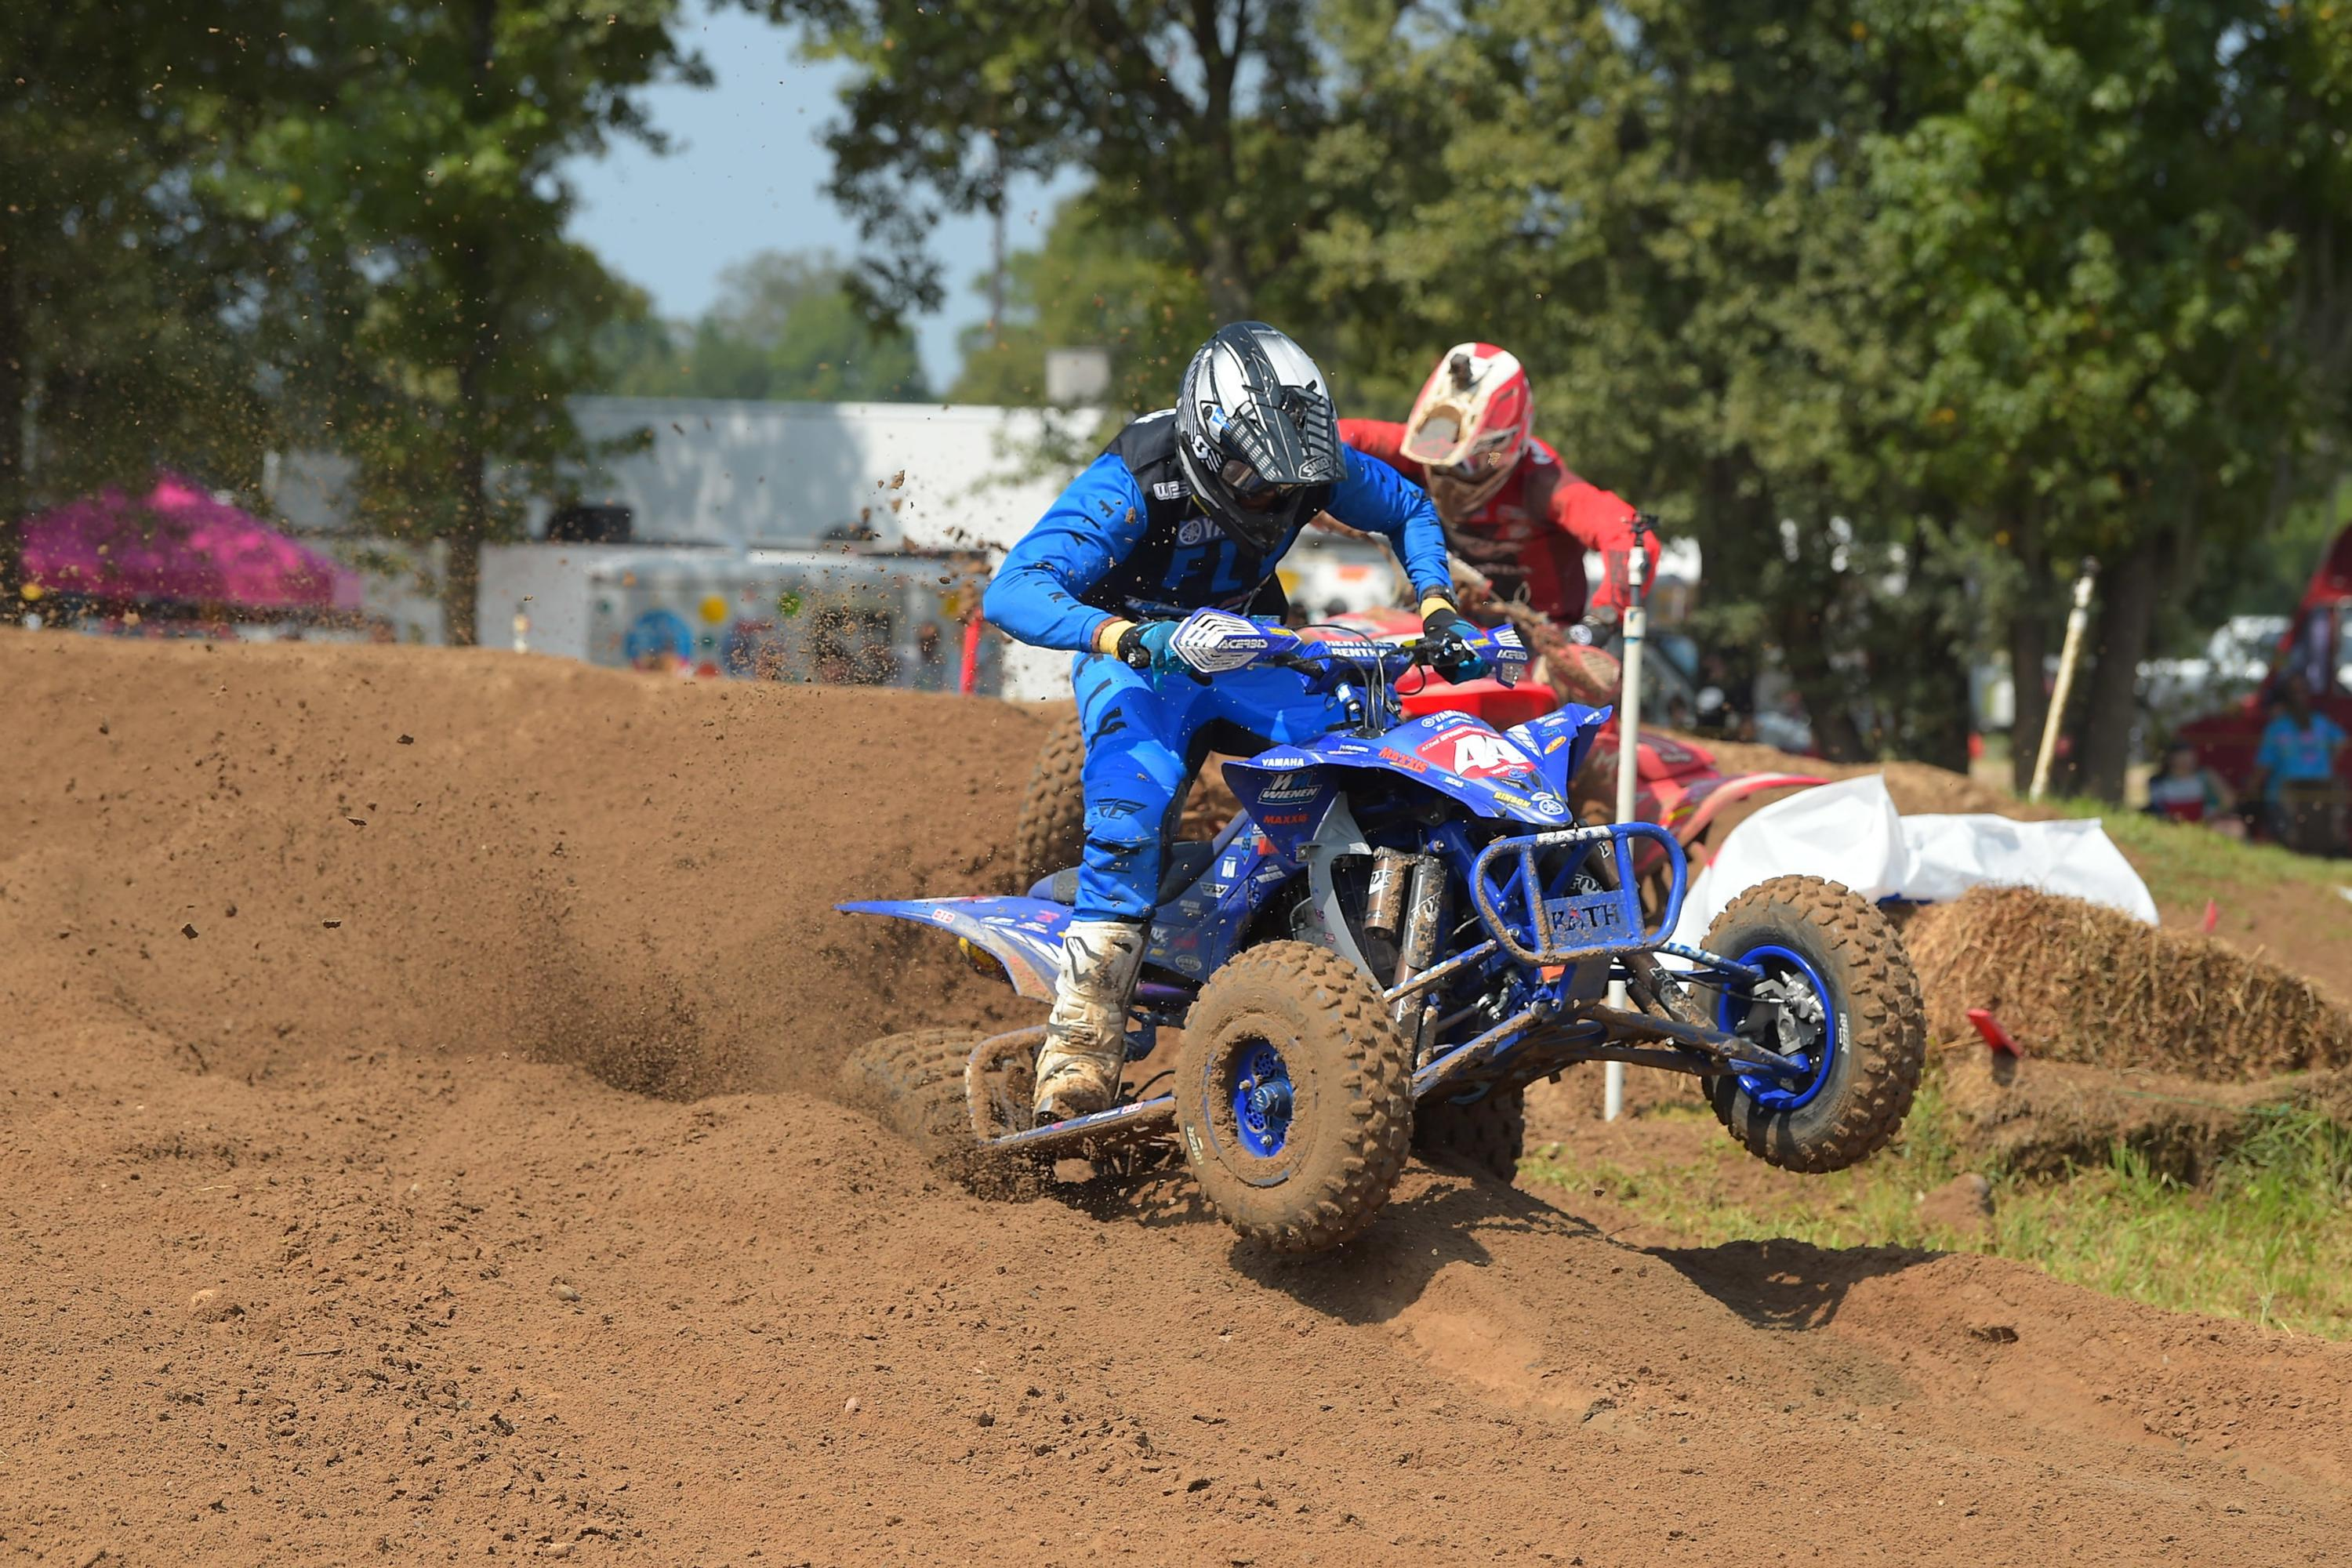 Intense Racing at Texas ATVMX National Doubleheader